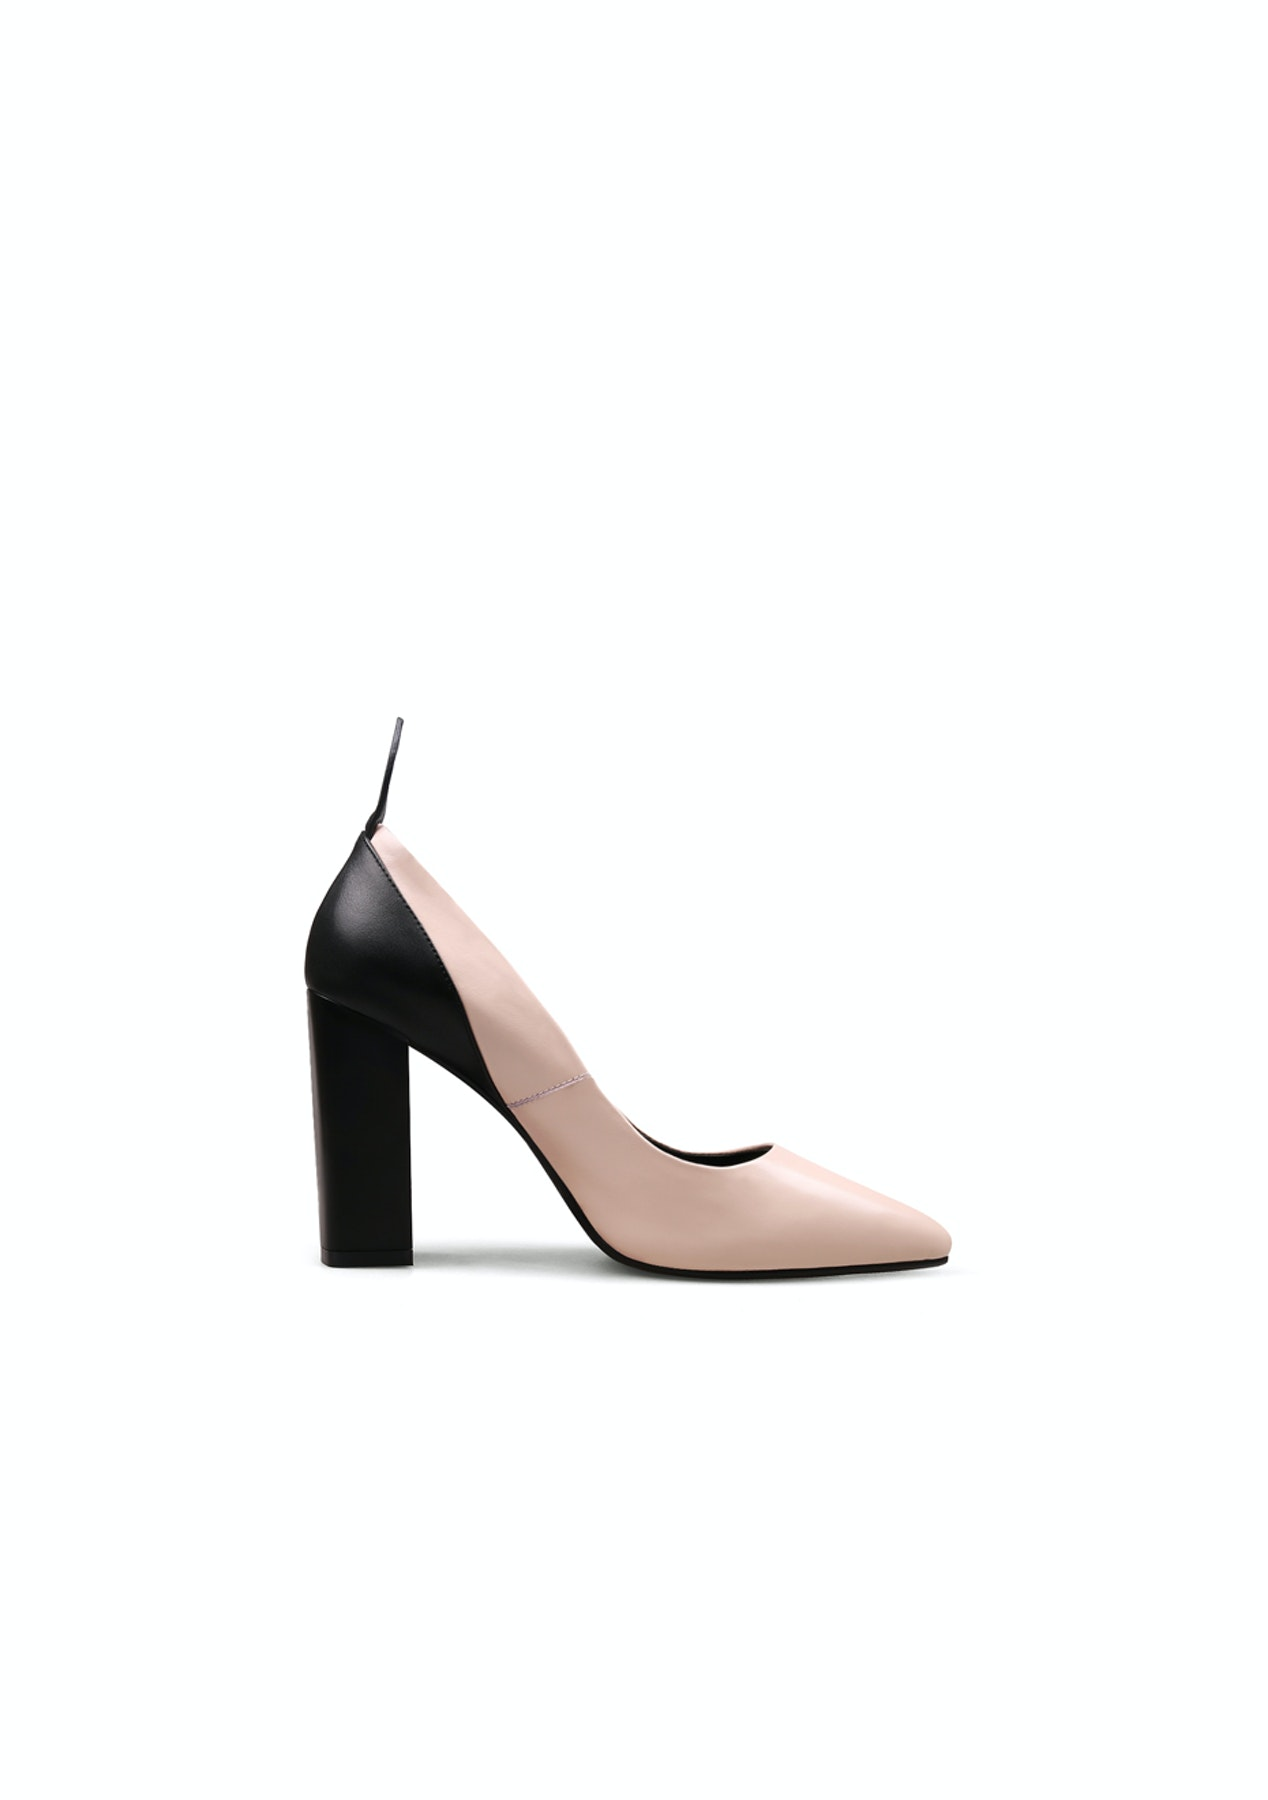 0929018a0e4c Jady Rose - Pumps - Pink - Jady Rose - Onceit